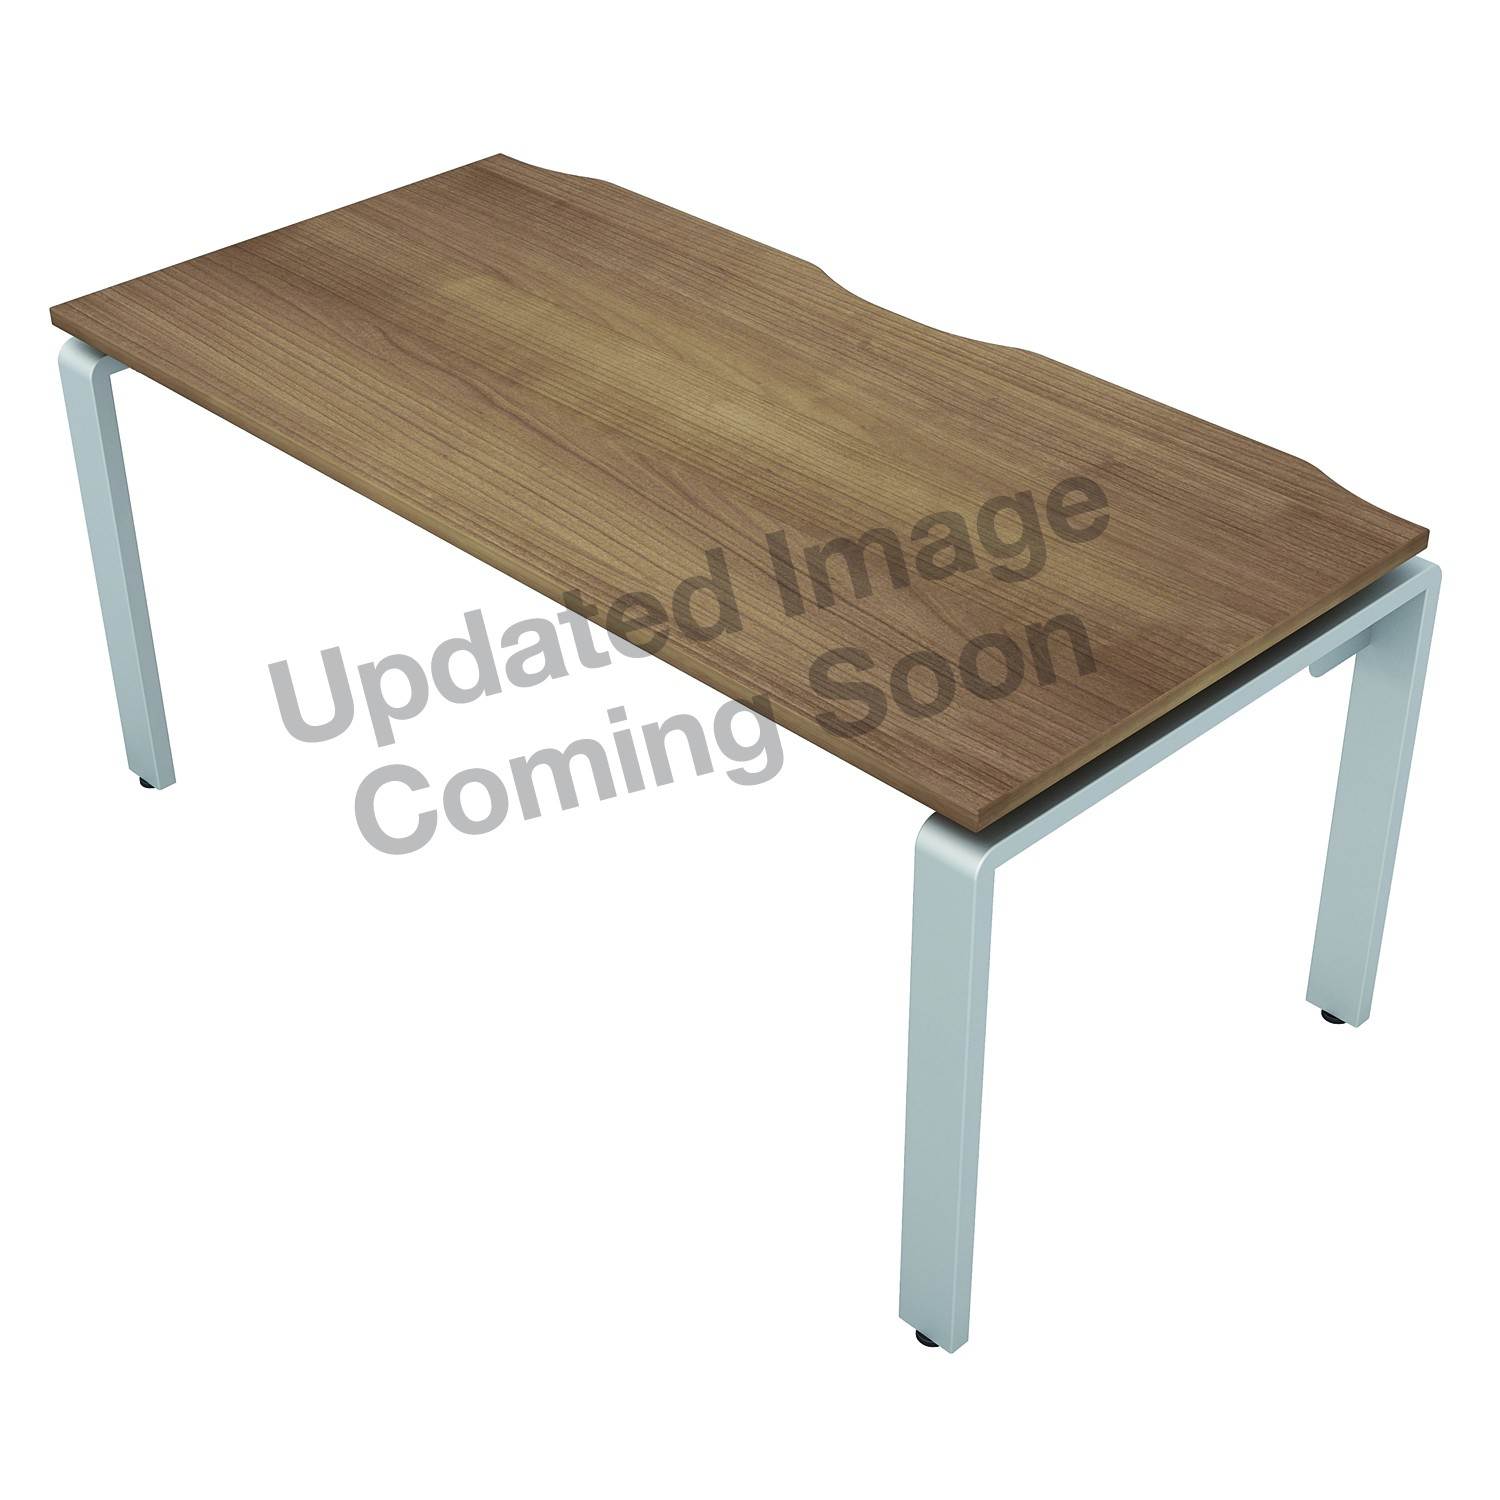 AuraBench Shallow Rectangular